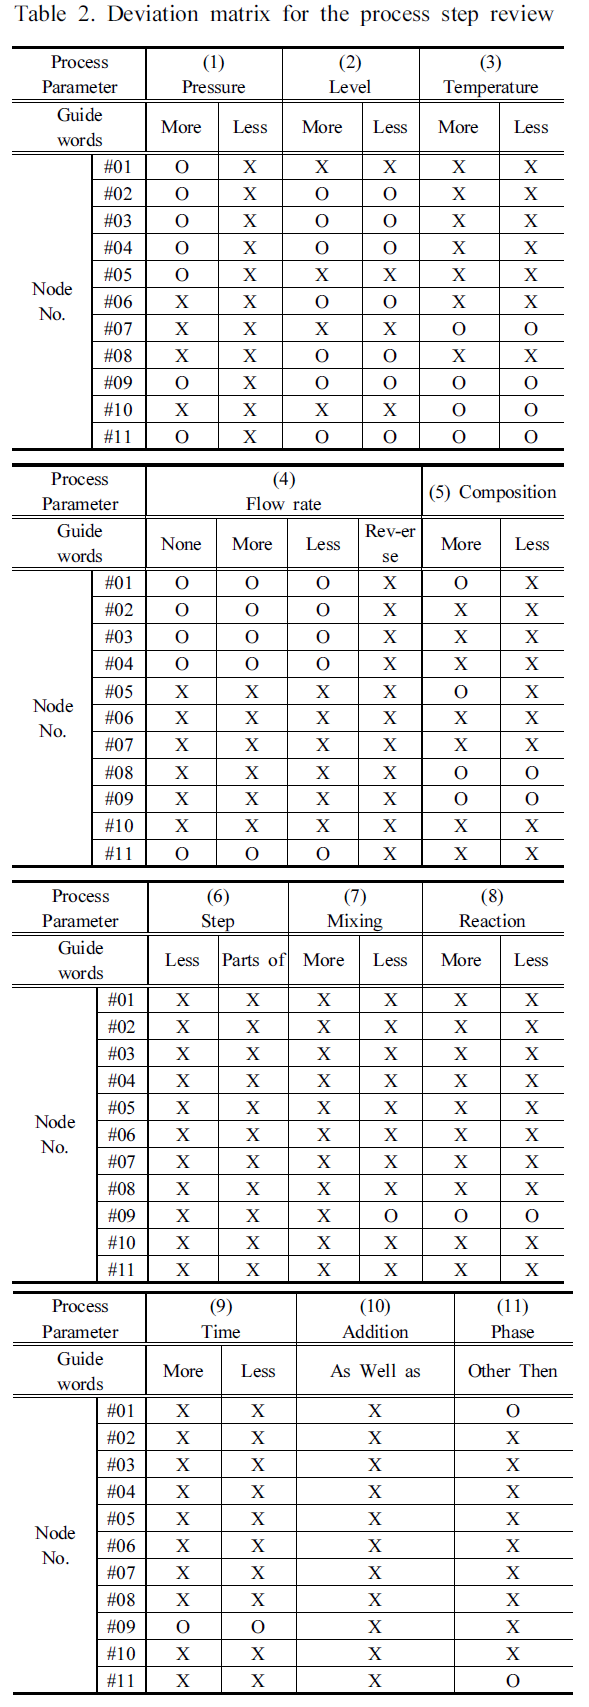 Table 2. Deviation matrix for the process step review